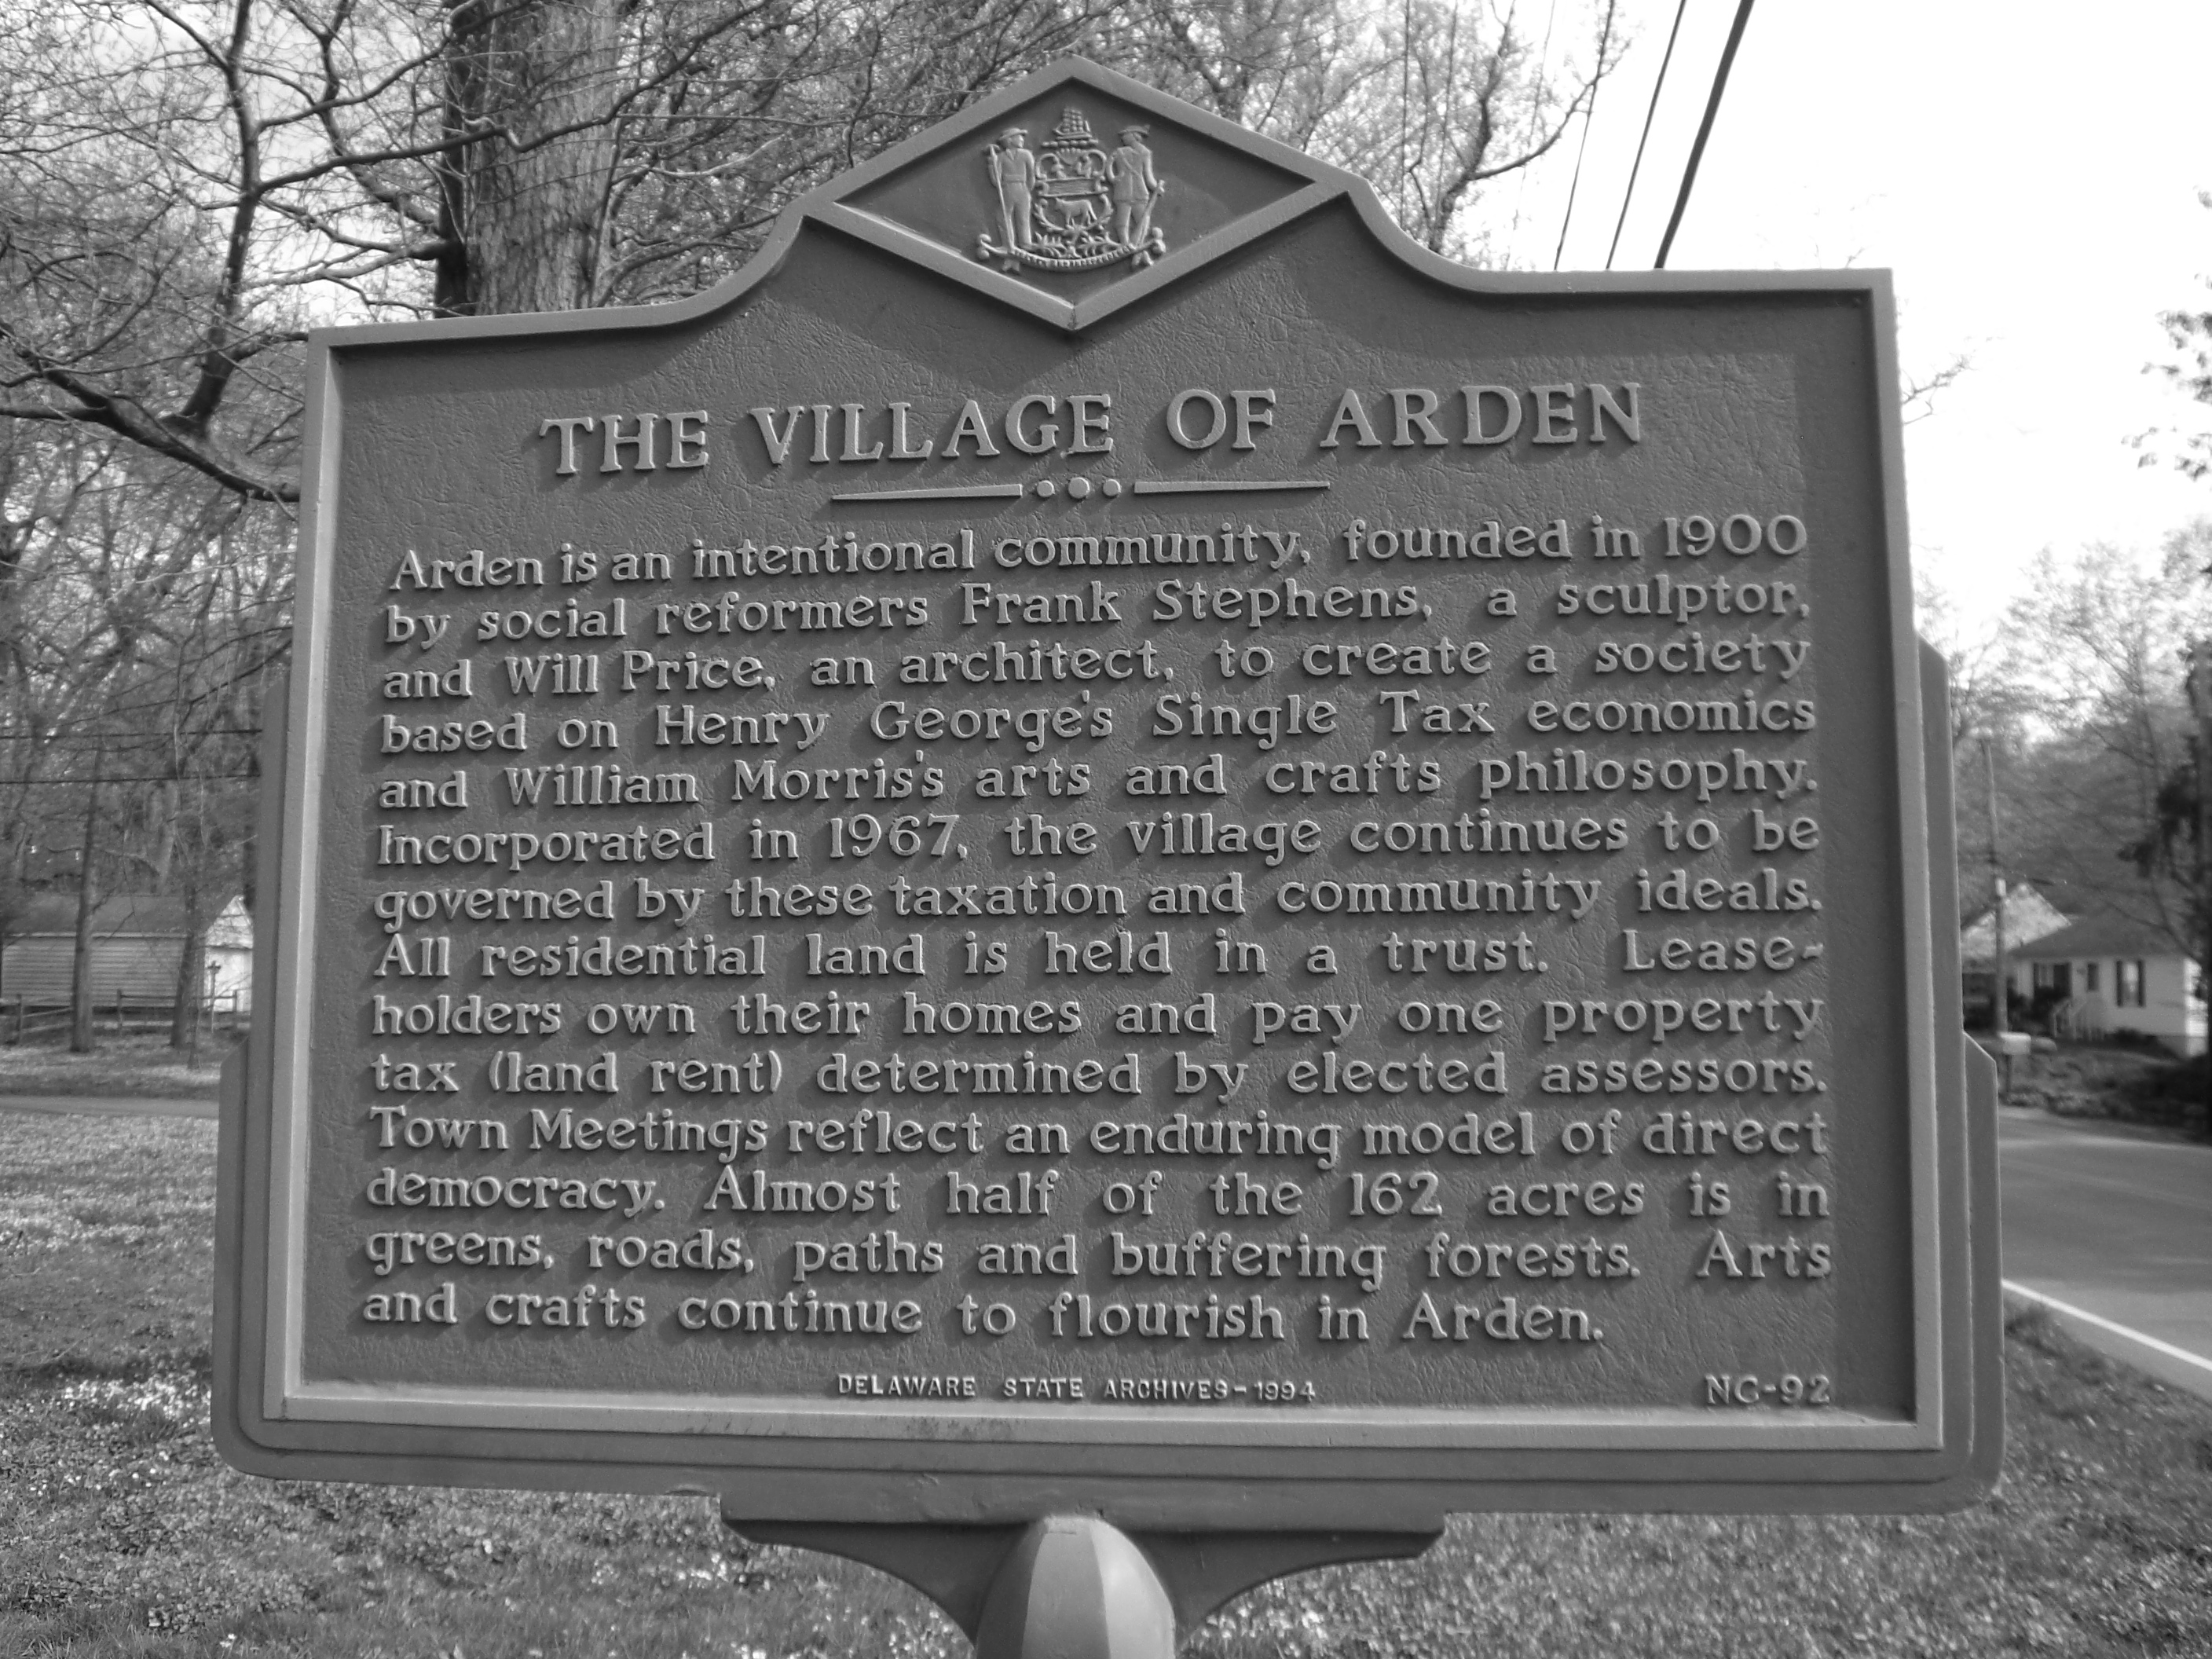 The Village of Arden Historical Marker